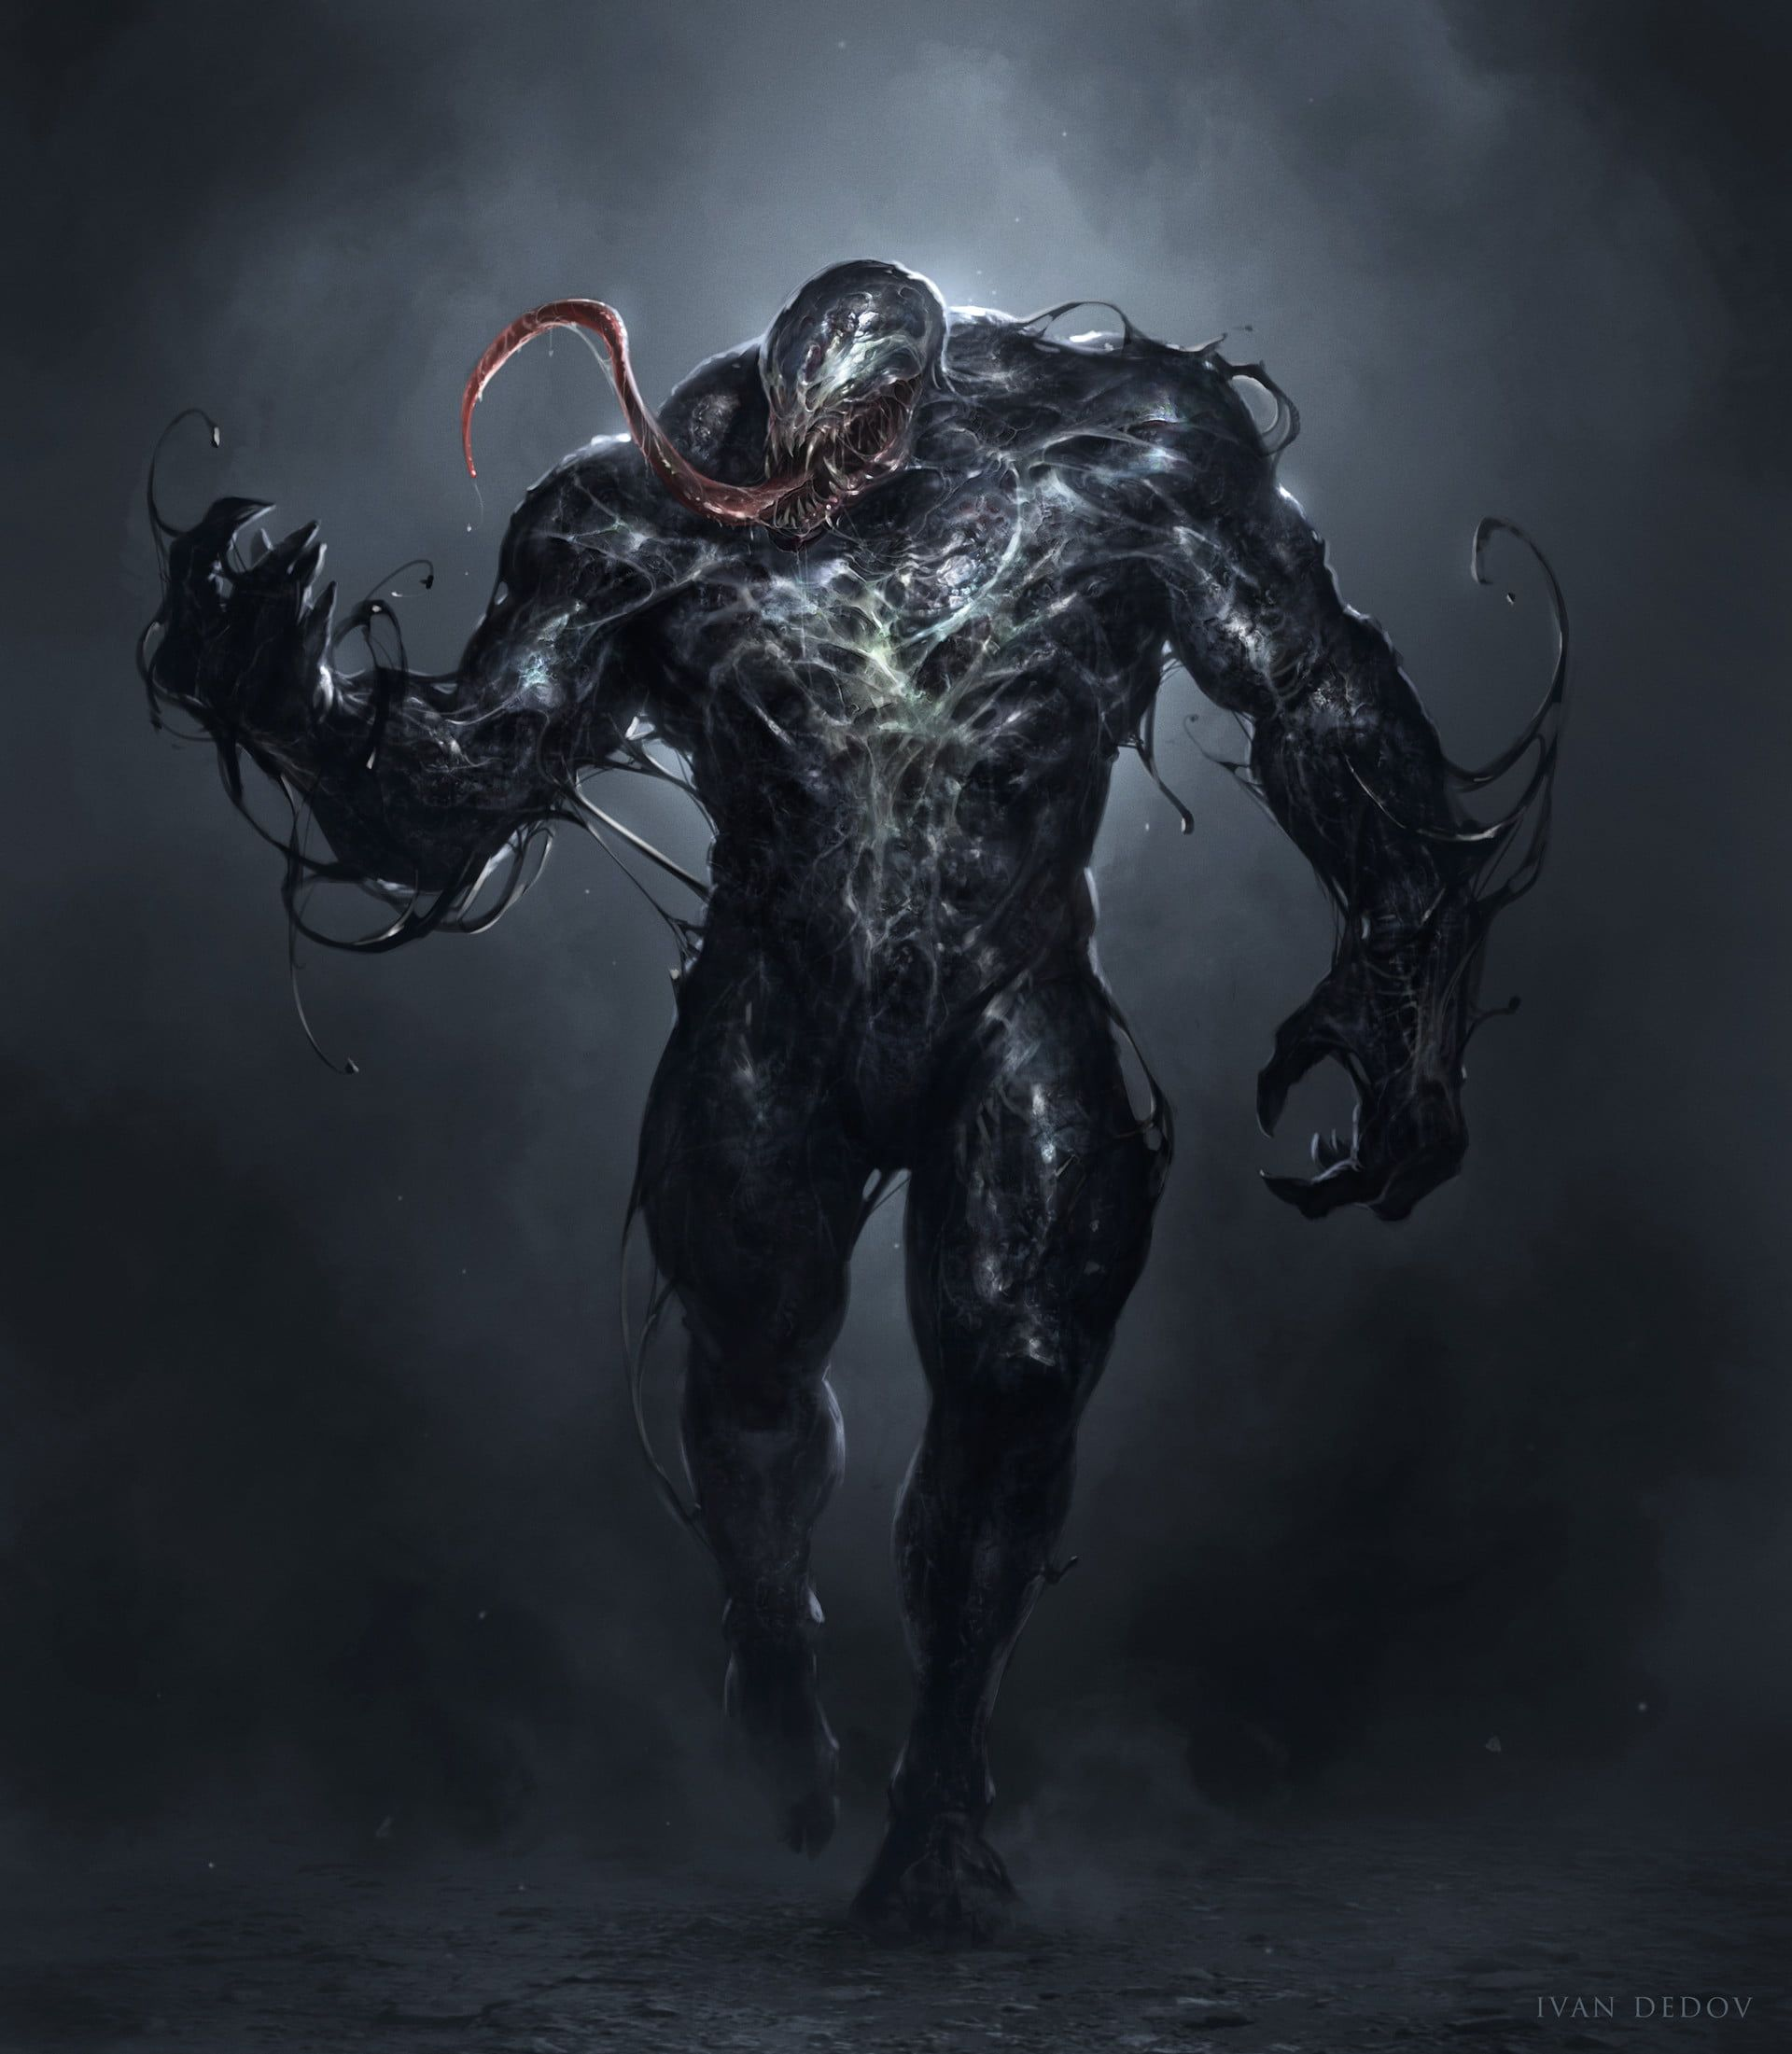 Venom Wallpaper Ivan Dedov Venom Artwork Digital Art Concept Art Creature Spider Man Marvel Comics 2d Symbiote Fan Art Dark Venom Comics Venom Art Venom